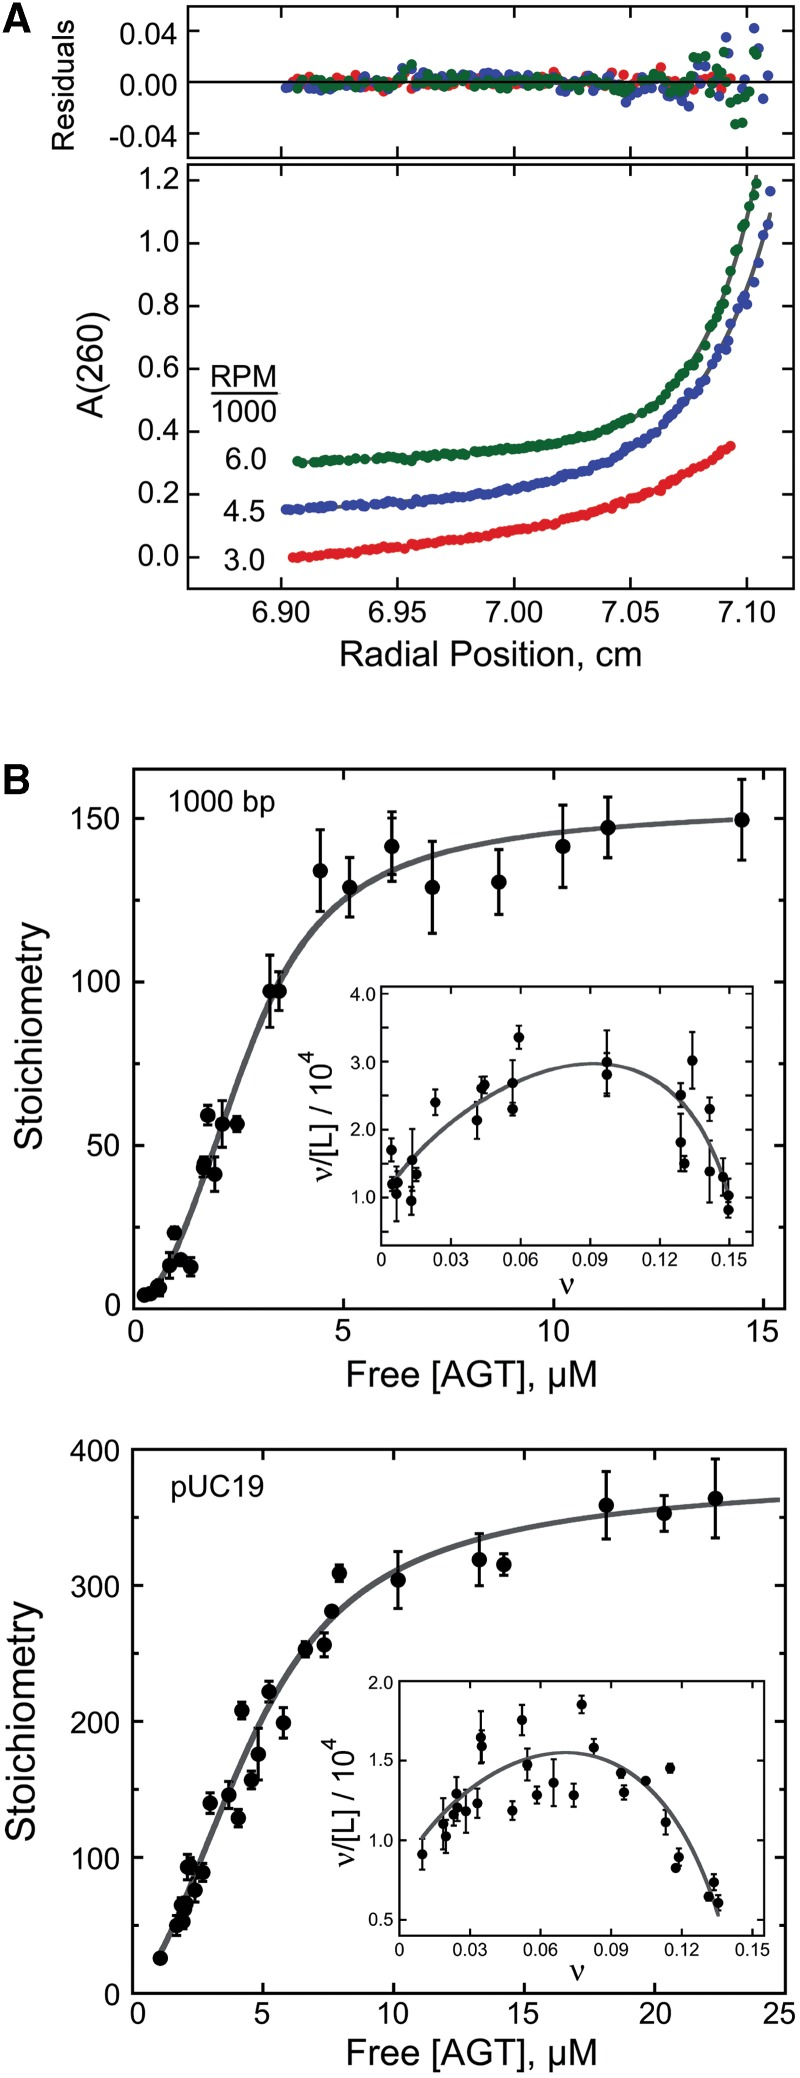 Analysis of AGT–DNA interactions by analytical ultracentrifugation. ( A ) Sedimentation equilibrium data for an AGT–DNA mixture obtained at 20 ± 0.1°C. This sample contained the 1000-bp DNA fragment (0.015 µM) and AGT protein (3.5 µM) in 10 mM Tris (pH 7.6 at 20°C), 1 mM EDTA, 100 mM NaCl and 1 mM DTT. Radial scans taken at 3000 rpm (red), 4500 rpm (blue) and 6000 rpm (green) are shown with vertical offsets for clarity. The smooth curves correspond to fits of equation 1 to these data. Small, symmetrically distributed residuals (upper panel) indicate that the two-species model represented by equation 1 is consistent with the mass distributions of DNA in these samples. ( B ) Dependence of binding stoichiometry on free AGT concentration for the 1000-bp fragment (upper panel) and linear pUC19 DNA (lower panel). Stoichiometries were inferred from weight-average molecular weights measured at sedimentation equilibrium. Error bars are 95% confidence limits for the individual parameters. The smooth curve is an isotherm calculated with equation 4 using parameters determined from the Scatchard plots shown in the insets. Insets: Scatchard plots for the data ensembles shown in the main panels. The solid curves are fits of equation 4 , returning K = 9667 ± 1499, ω = 35.9 ± 6.8 and s = 6.32 ± 0.12 for binding the 1000-bp fragment and K = 7960 ± 916, ω = 44.2 ± 3.8 and s = 6.81 ± 0.14 for binding linear pUC19 DNA.